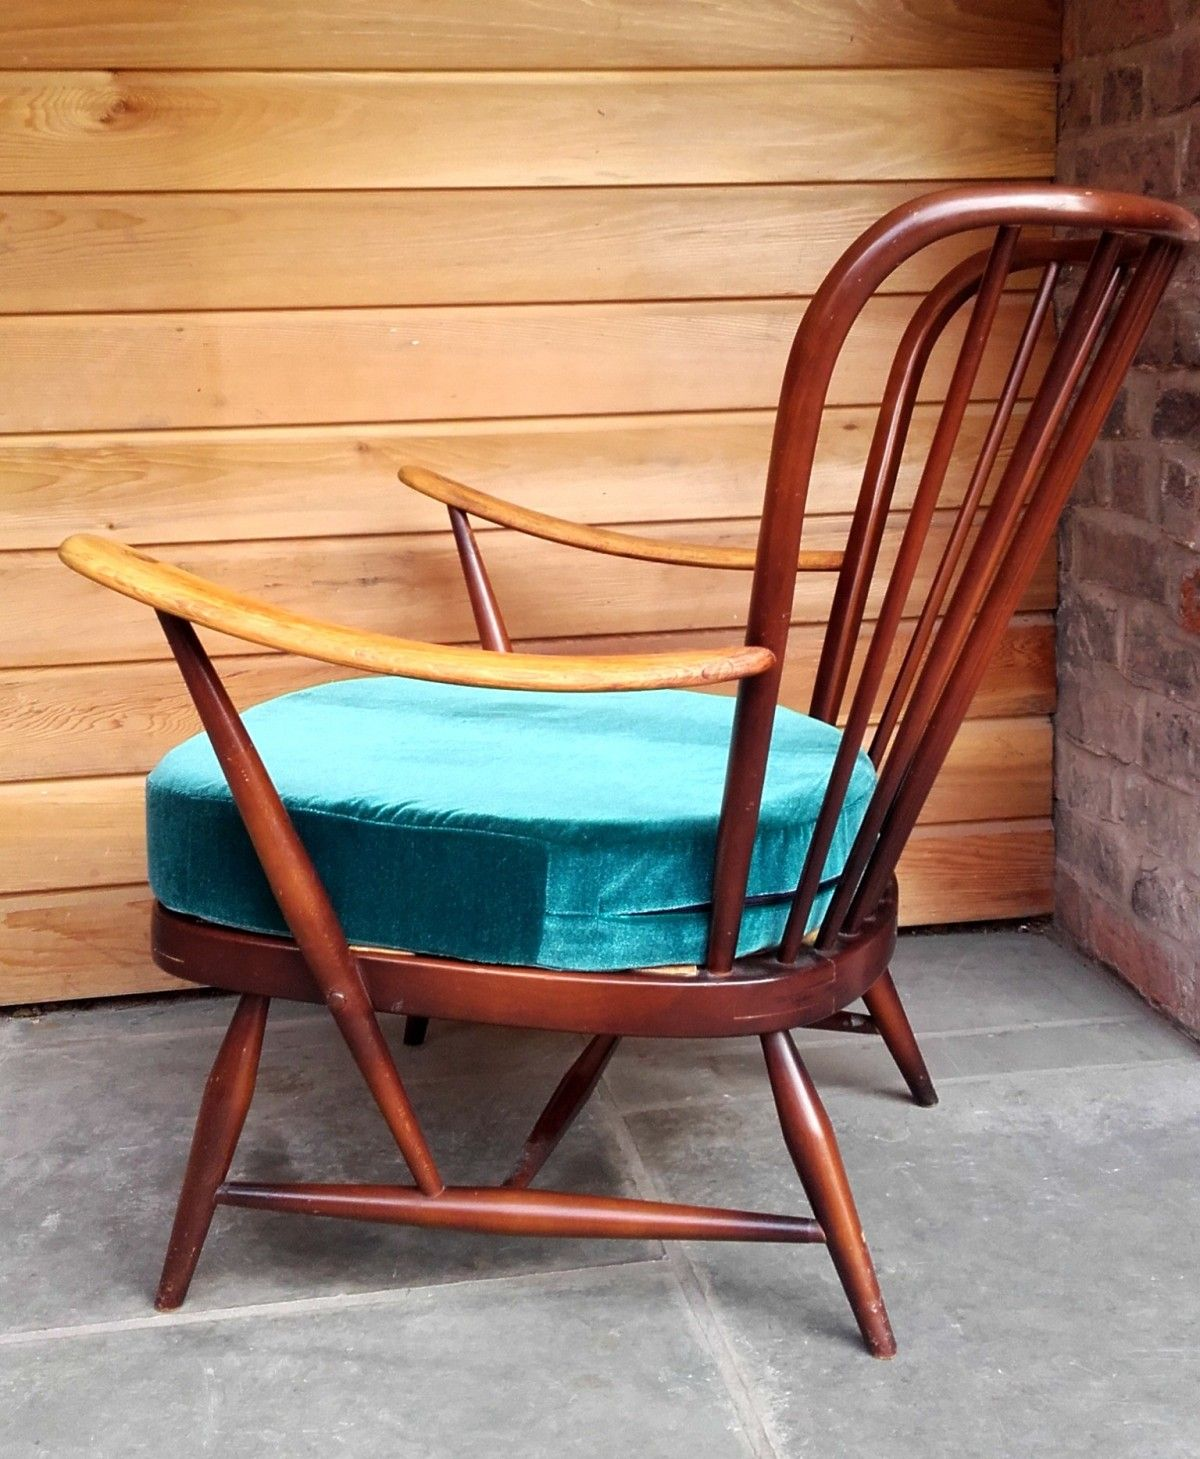 Gorgeously Curvy Ercol Model  477 Easy Chair 07Gorgeously Curvy Ercol Model  477 Easy Chair 07   Ercol 477   203  . Ercol Easy Chairs For Sale. Home Design Ideas